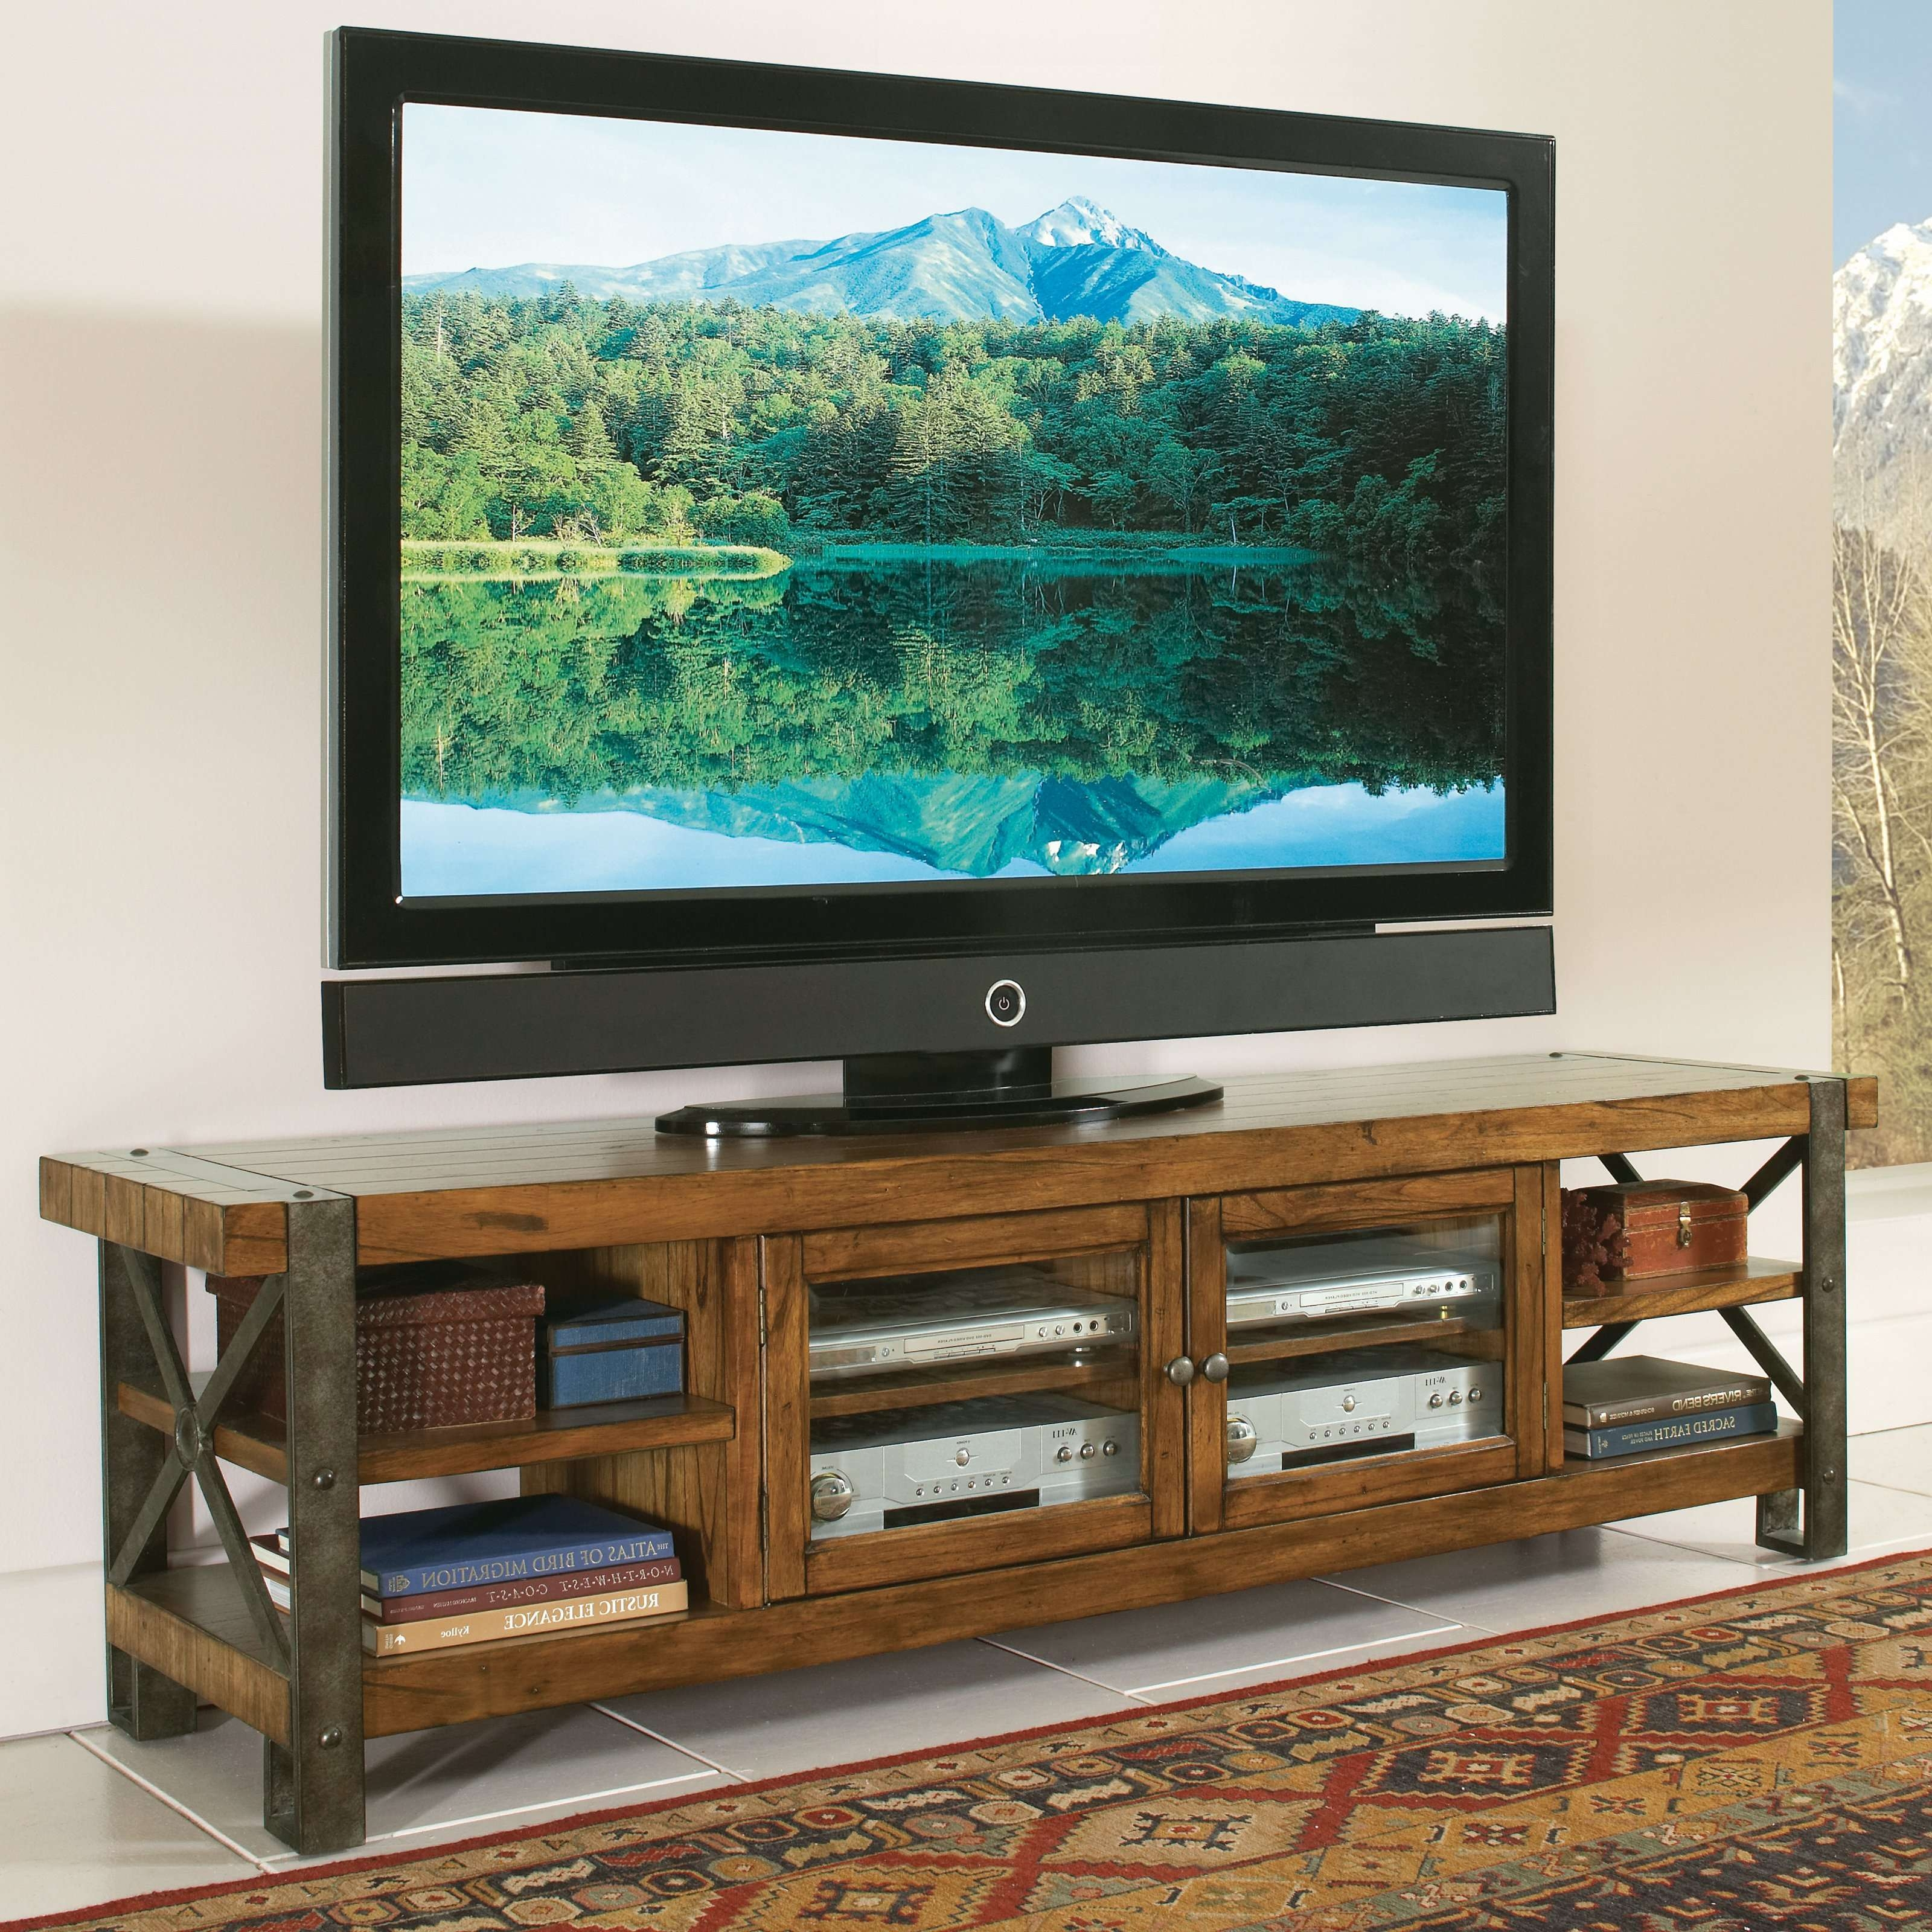 Tv : 35 Supurb Reclaimed Wood Tv Stands Media Consoles Awesome Inside Rustic Looking Tv Stands (View 3 of 20)